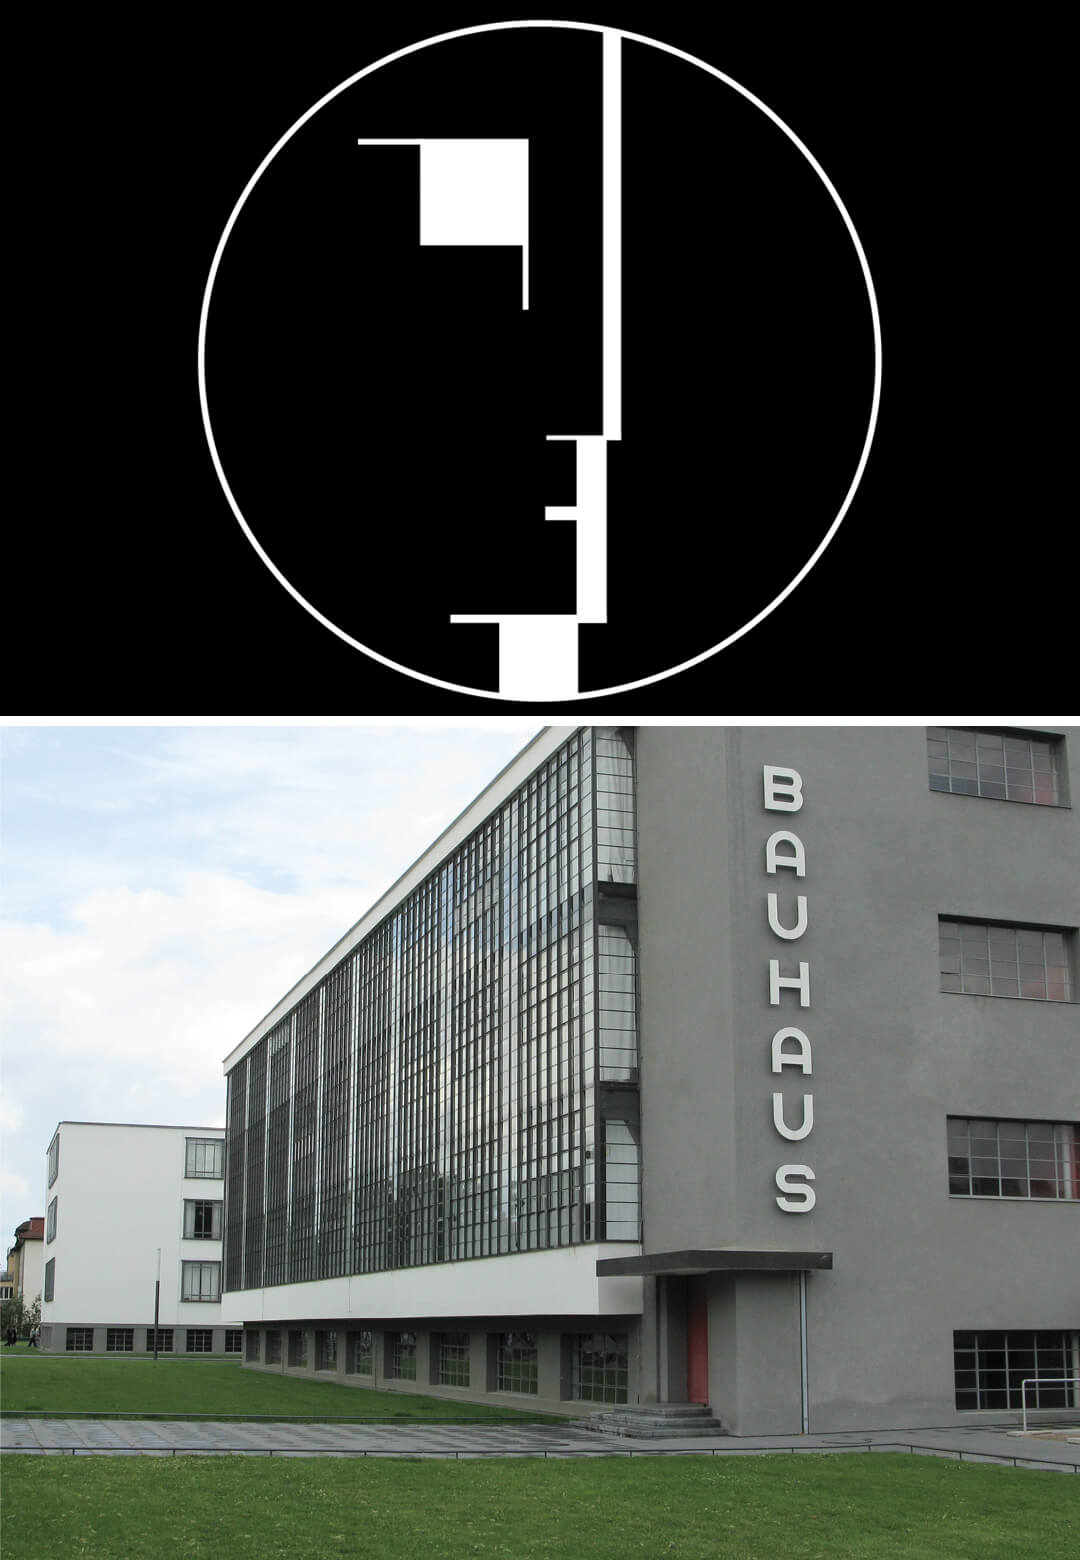 (L) The Bauhaus emblem, designed by Oskar Schlemmer, adopted in 1921 and (R) The iconic Bauhaus building in Dessau | European Bauhaus | European Commission | STIRworld